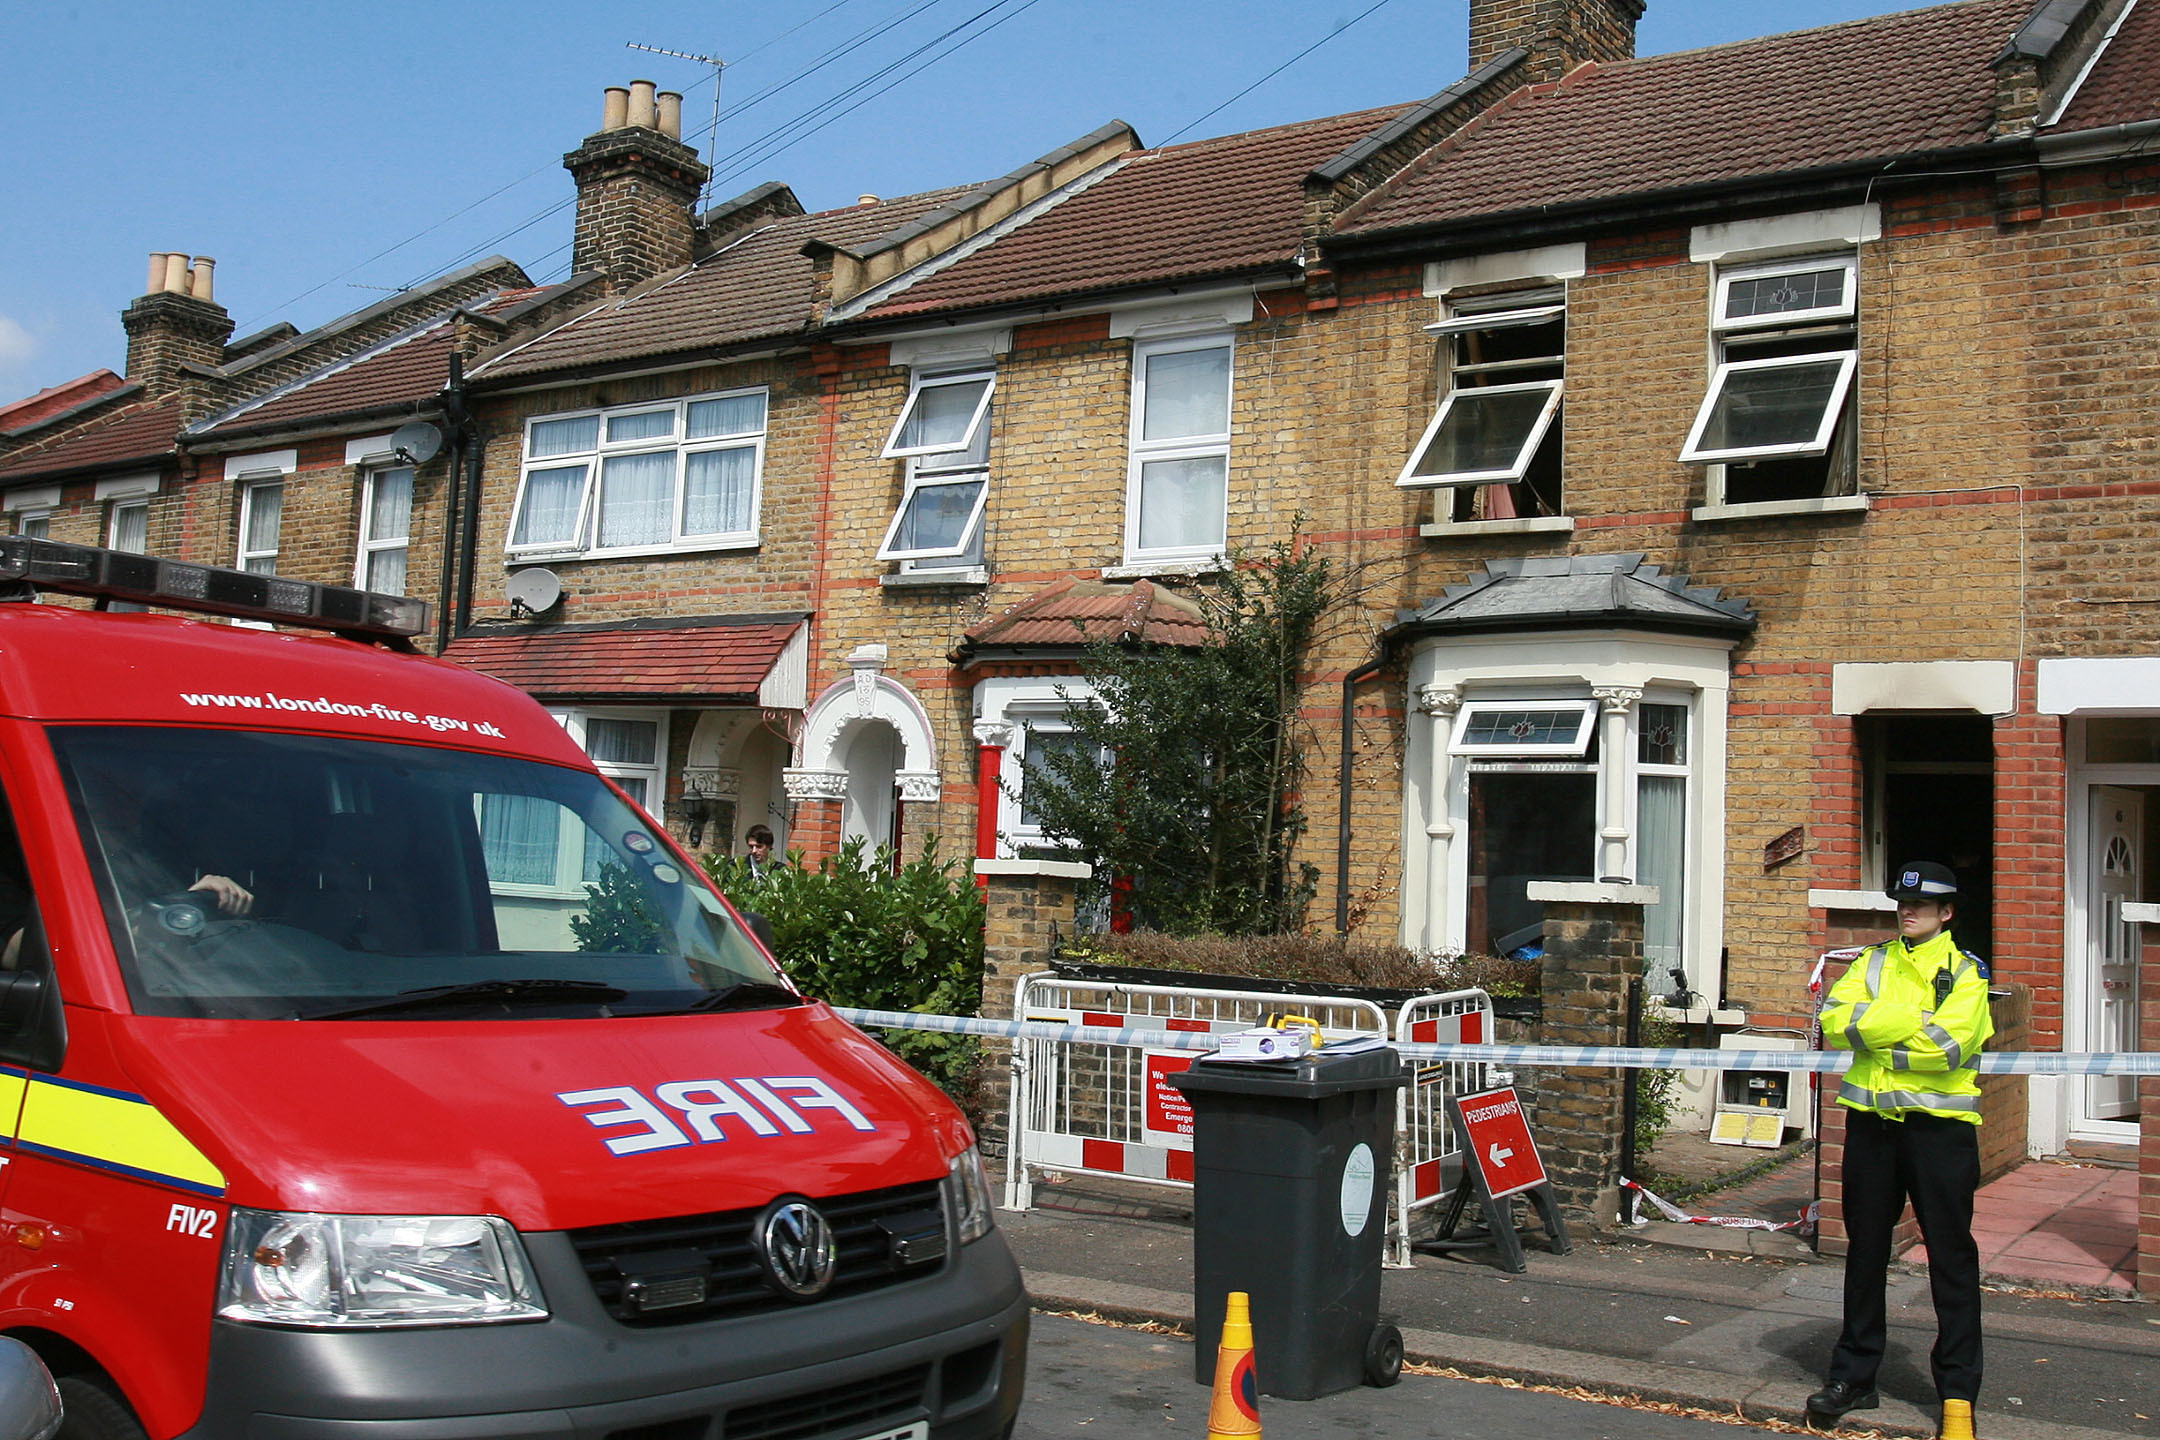 LFB and police at the fatal fire scene in Woodlands Road, Walthamstow on July 28 2011